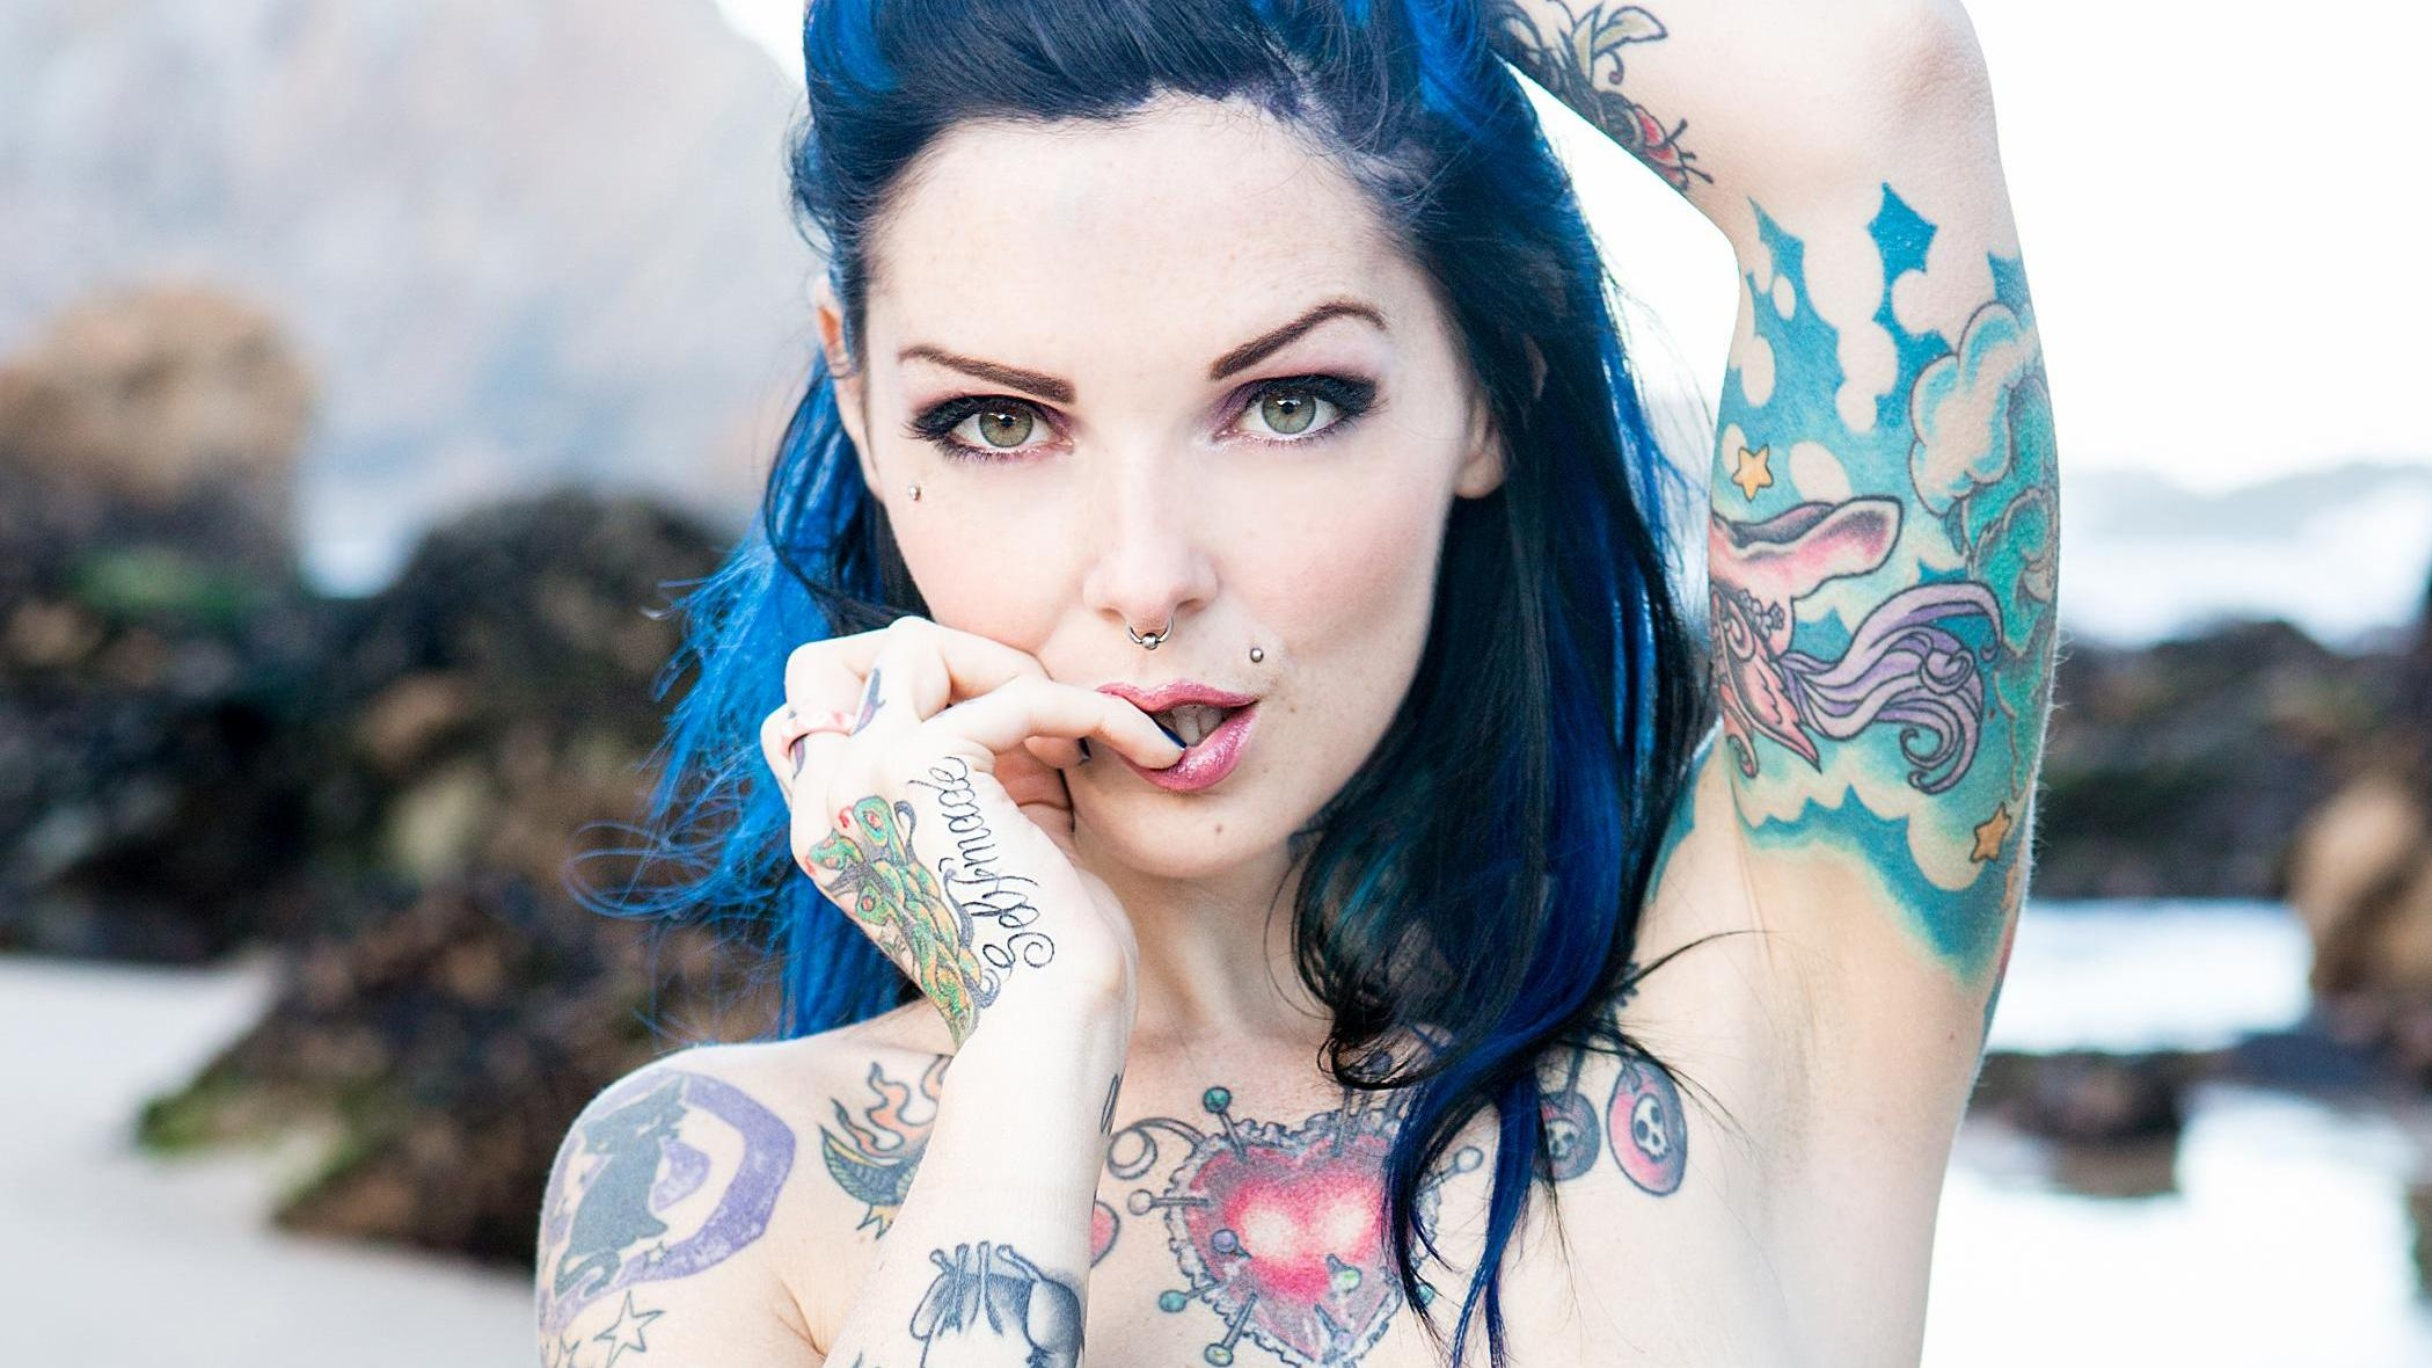 Riae Suicide  - Rising From suicidegirls @riae guiche,asstounding,wonderful,smores,uber